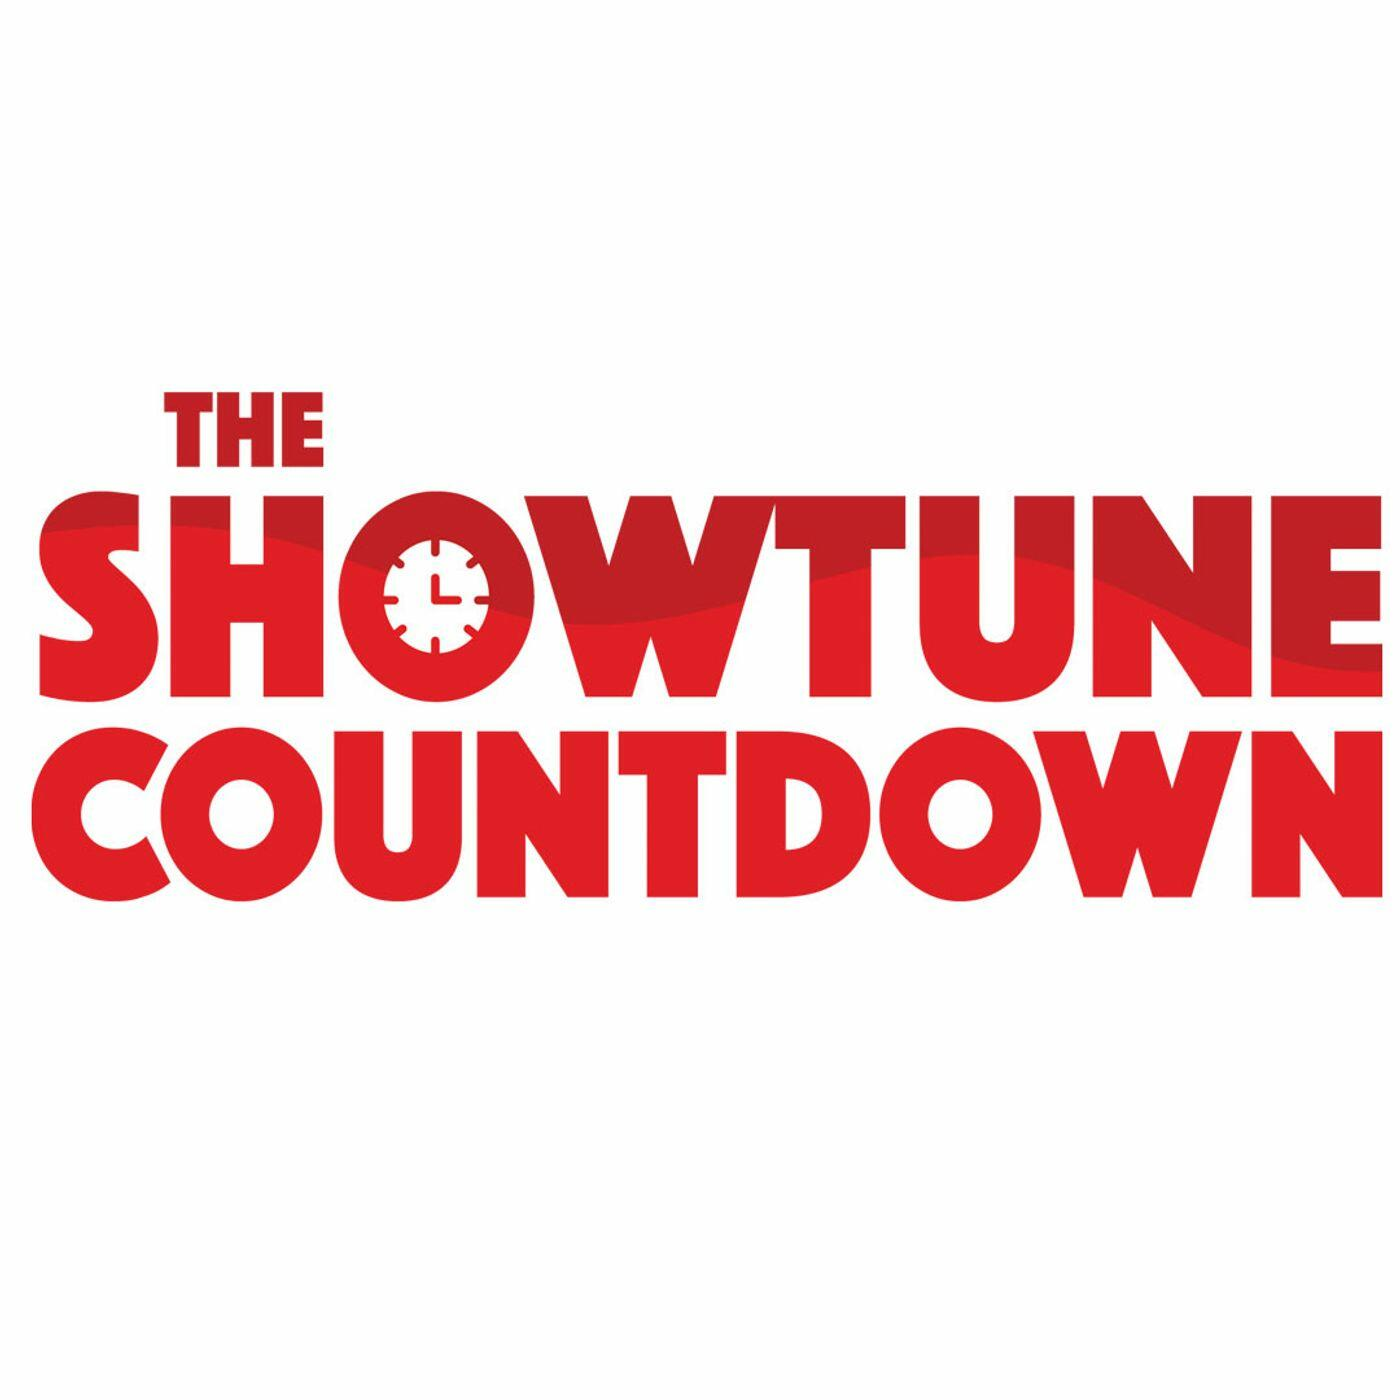 Listen Free to The Showtune Countdown on iHeartRadio Podcasts | iHeartRadio